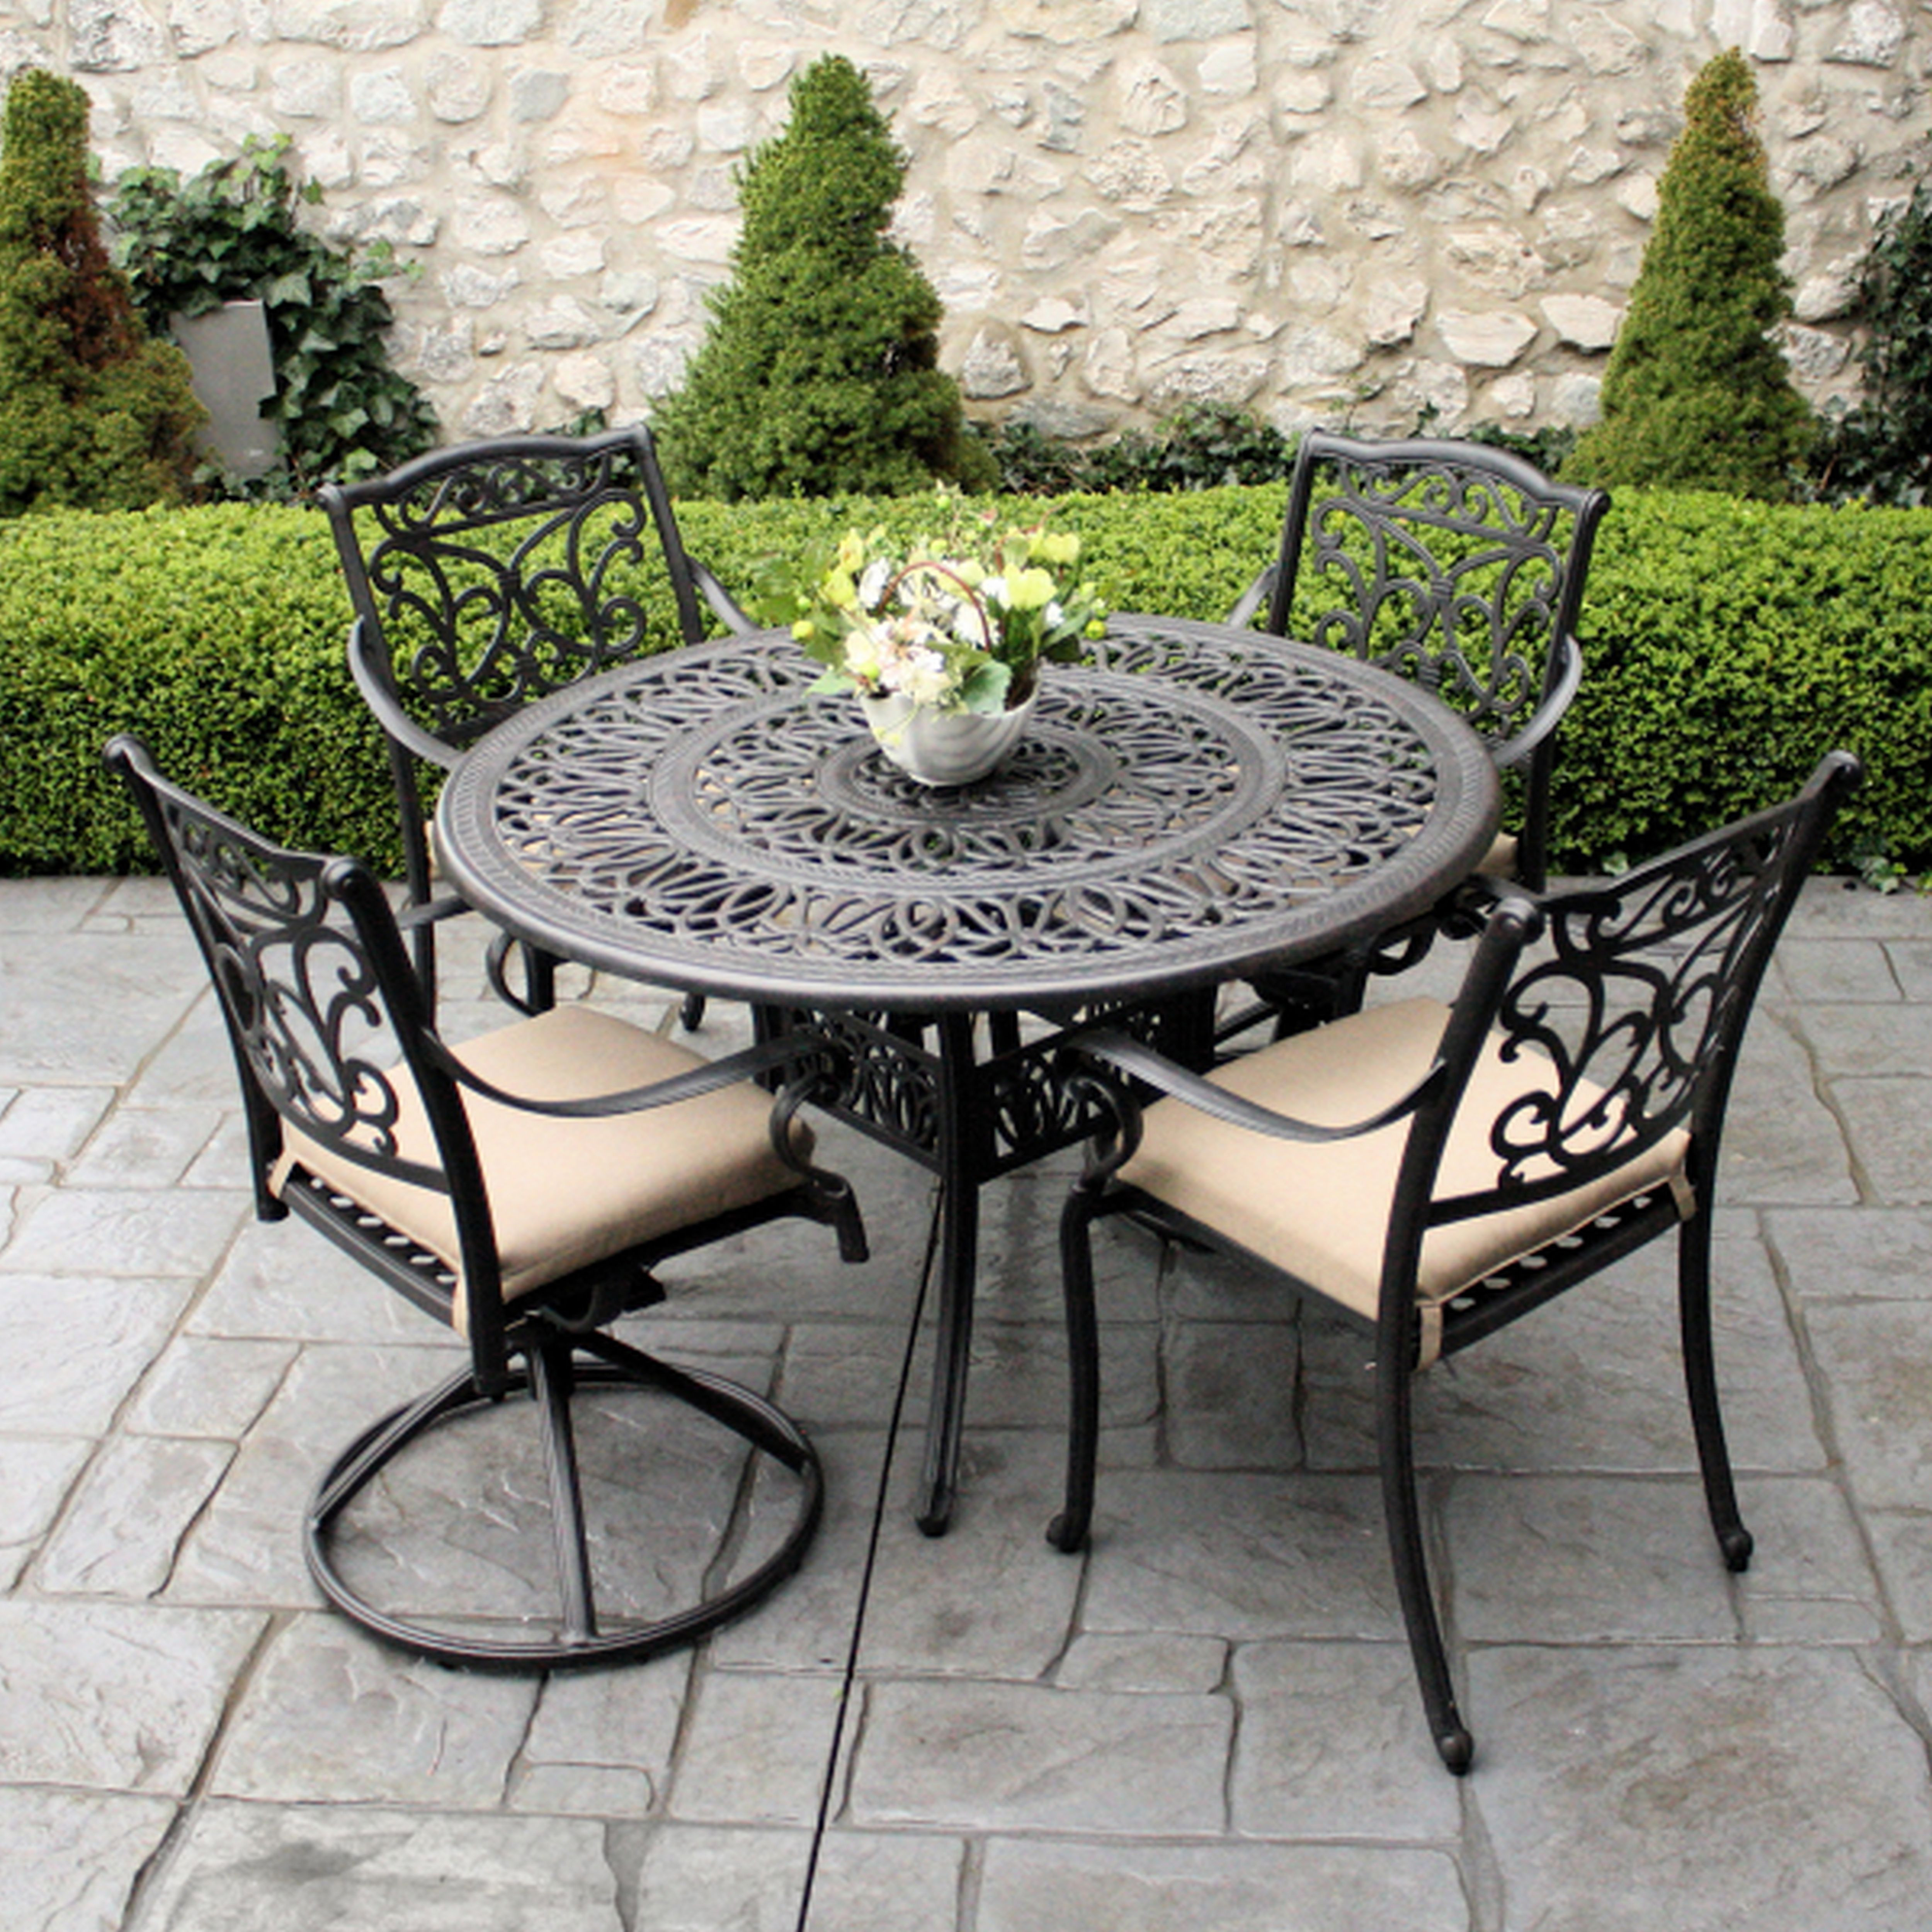 Best ideas about Patio Dining Sets On Sale . Save or Pin Patio Astonishing Outdoor Dining Set Clearance Shoprite Now.